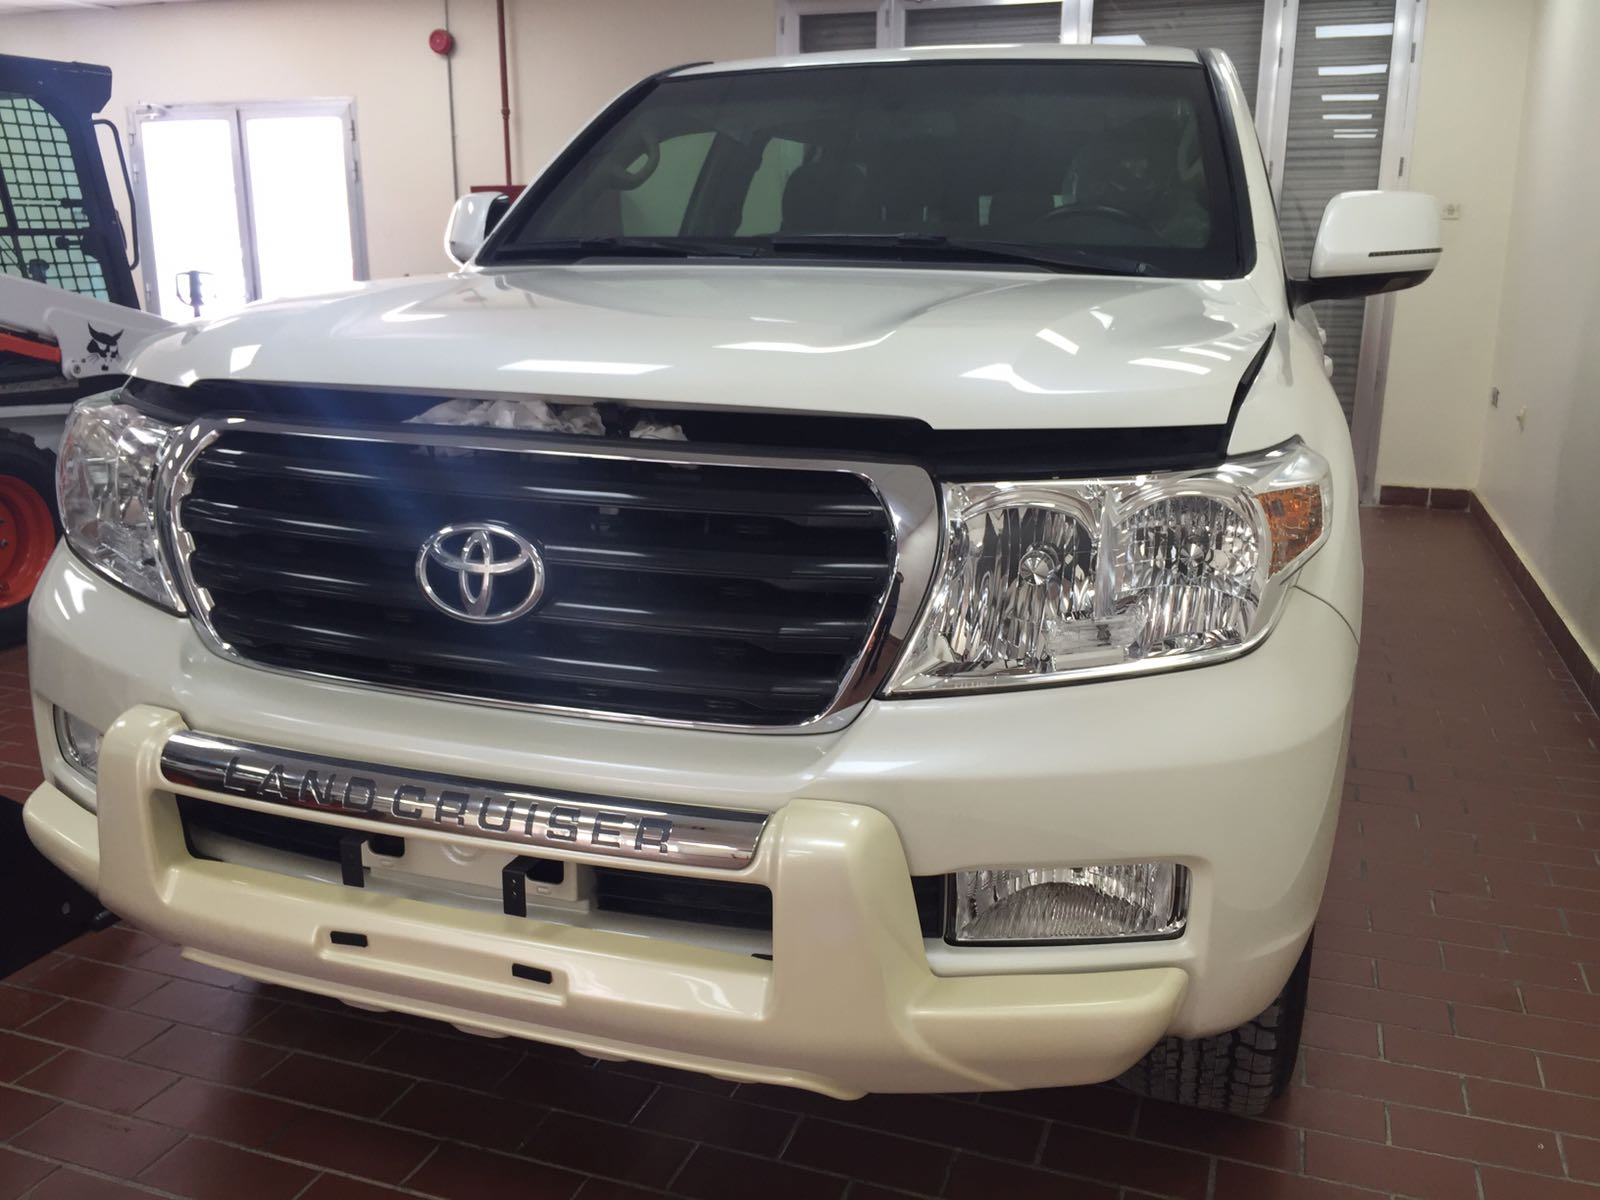 32683 - TOYOTA LAND CRUISER ARMORED Kuwait